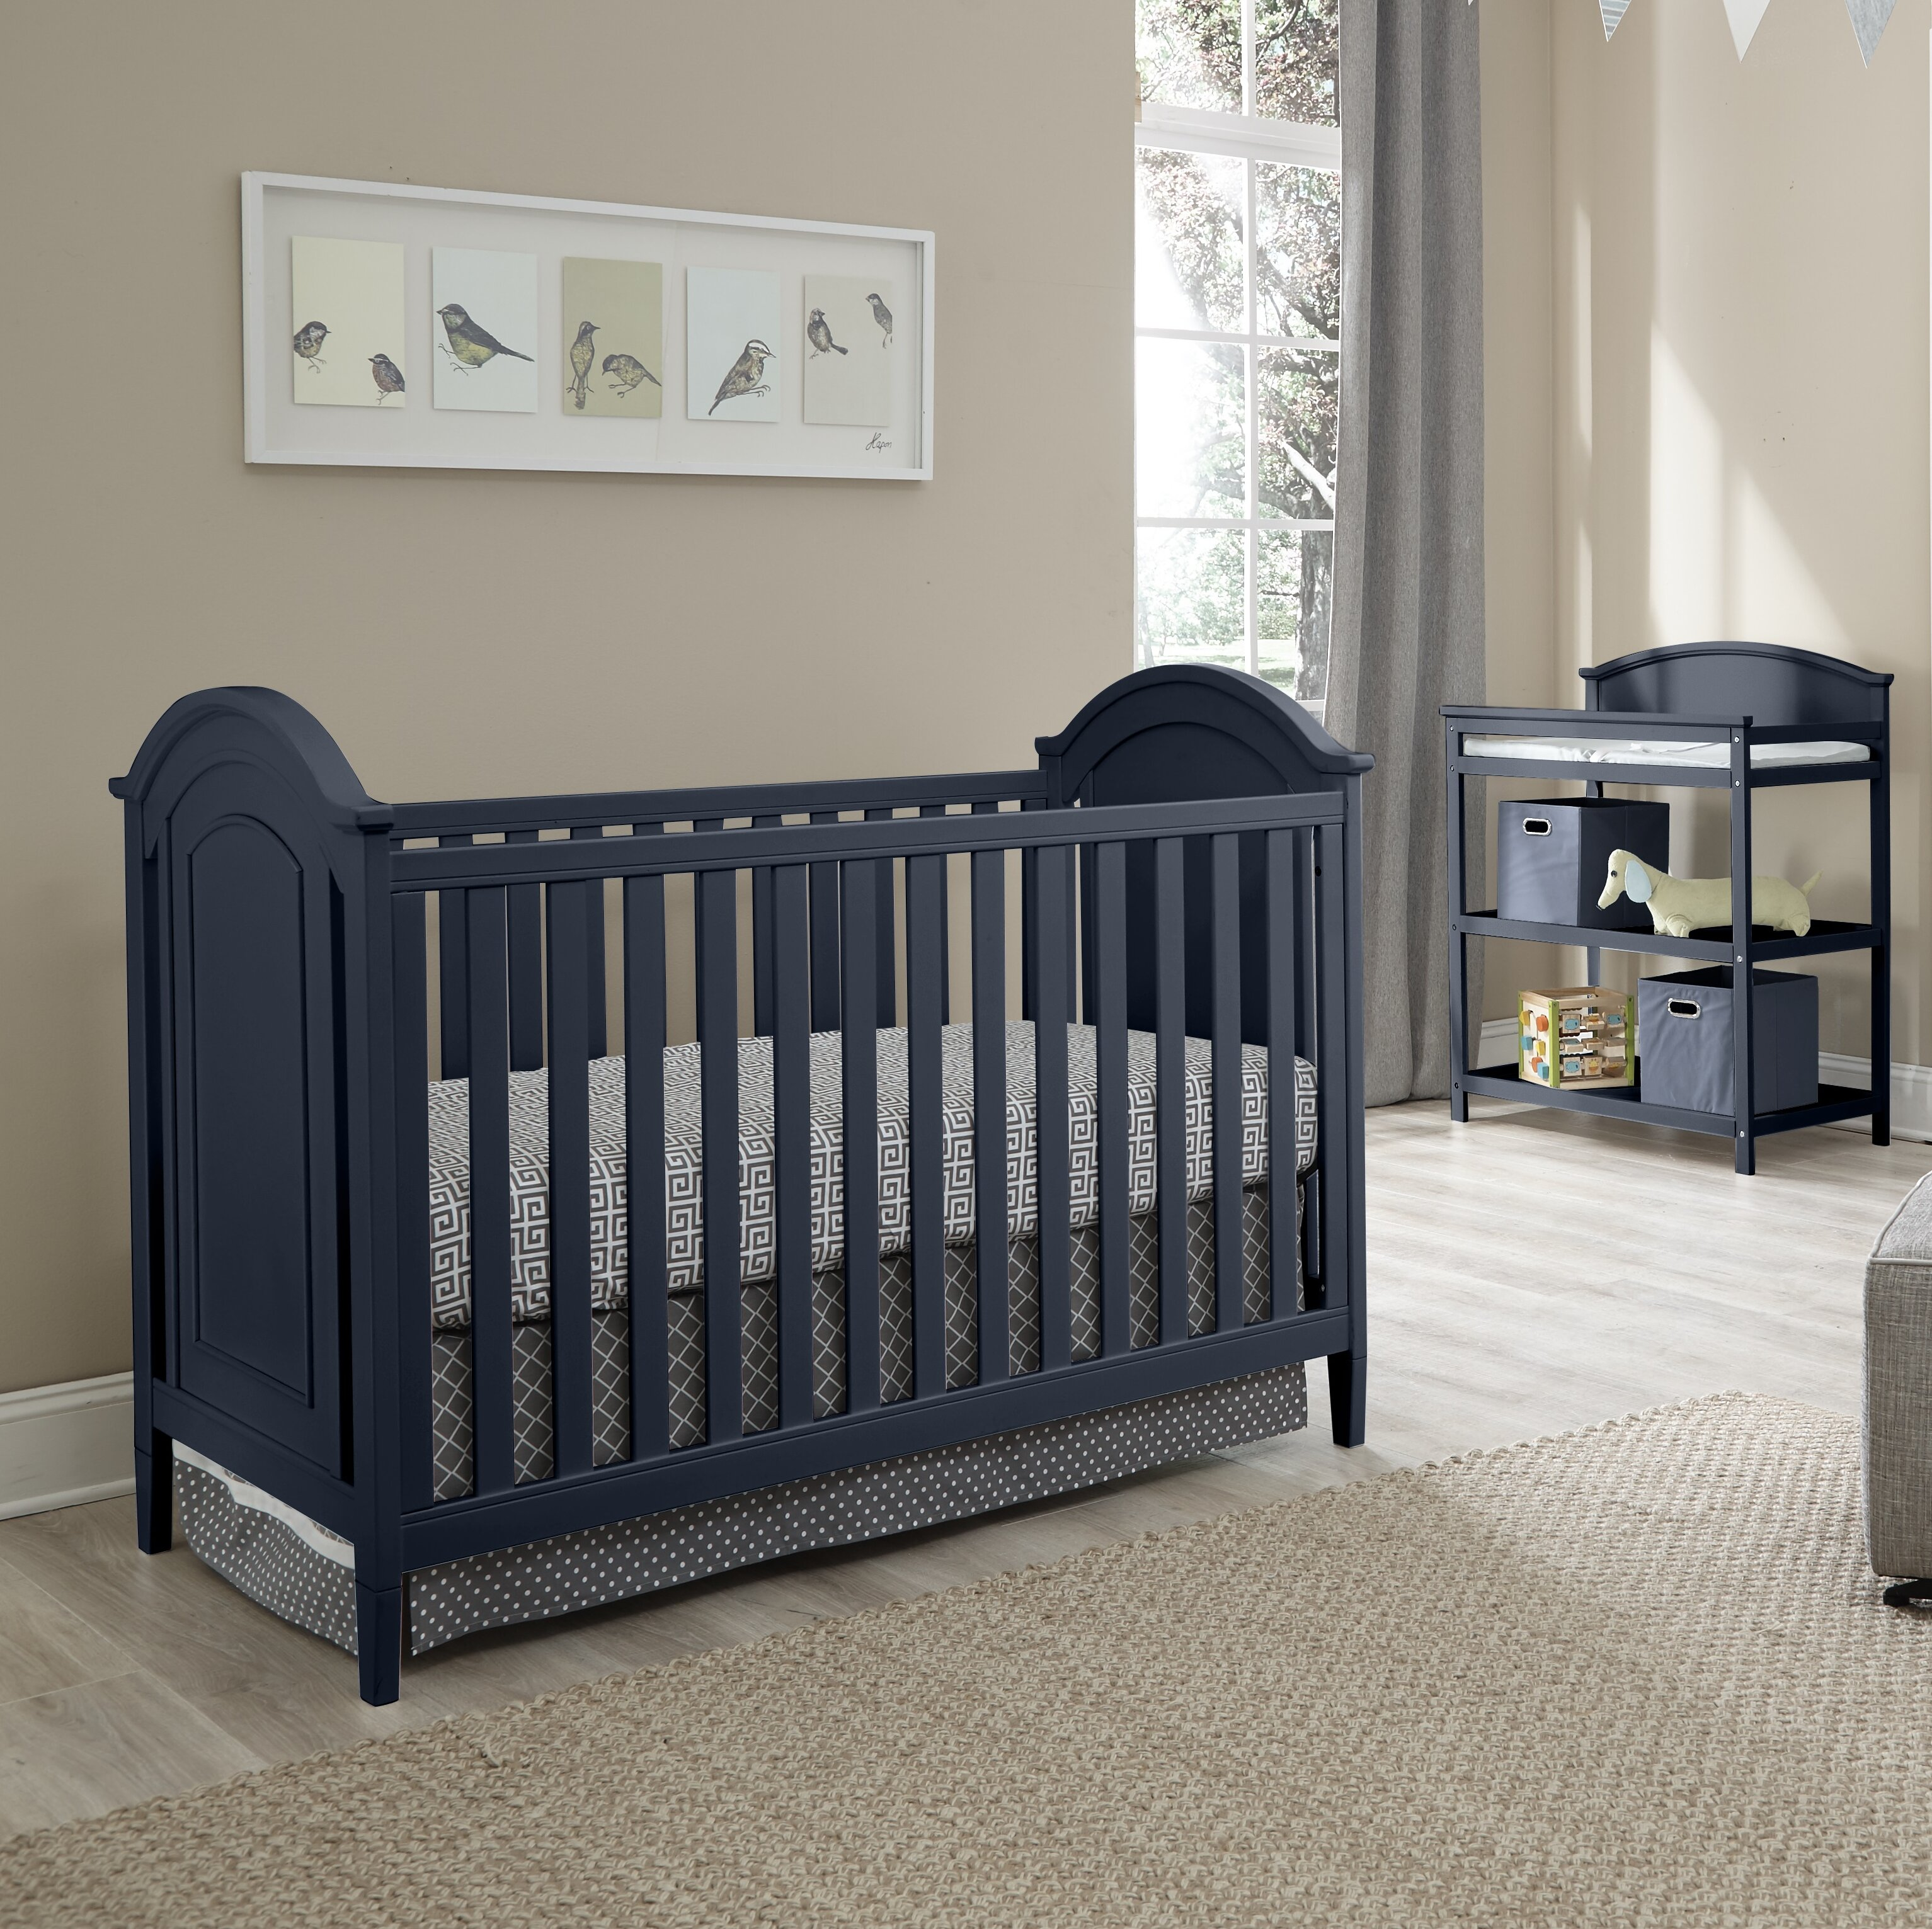 0b6d2c1d0d Harriet Bee Emile 3-in-1 Convertible 3 Piece Crib Set   Reviews ...